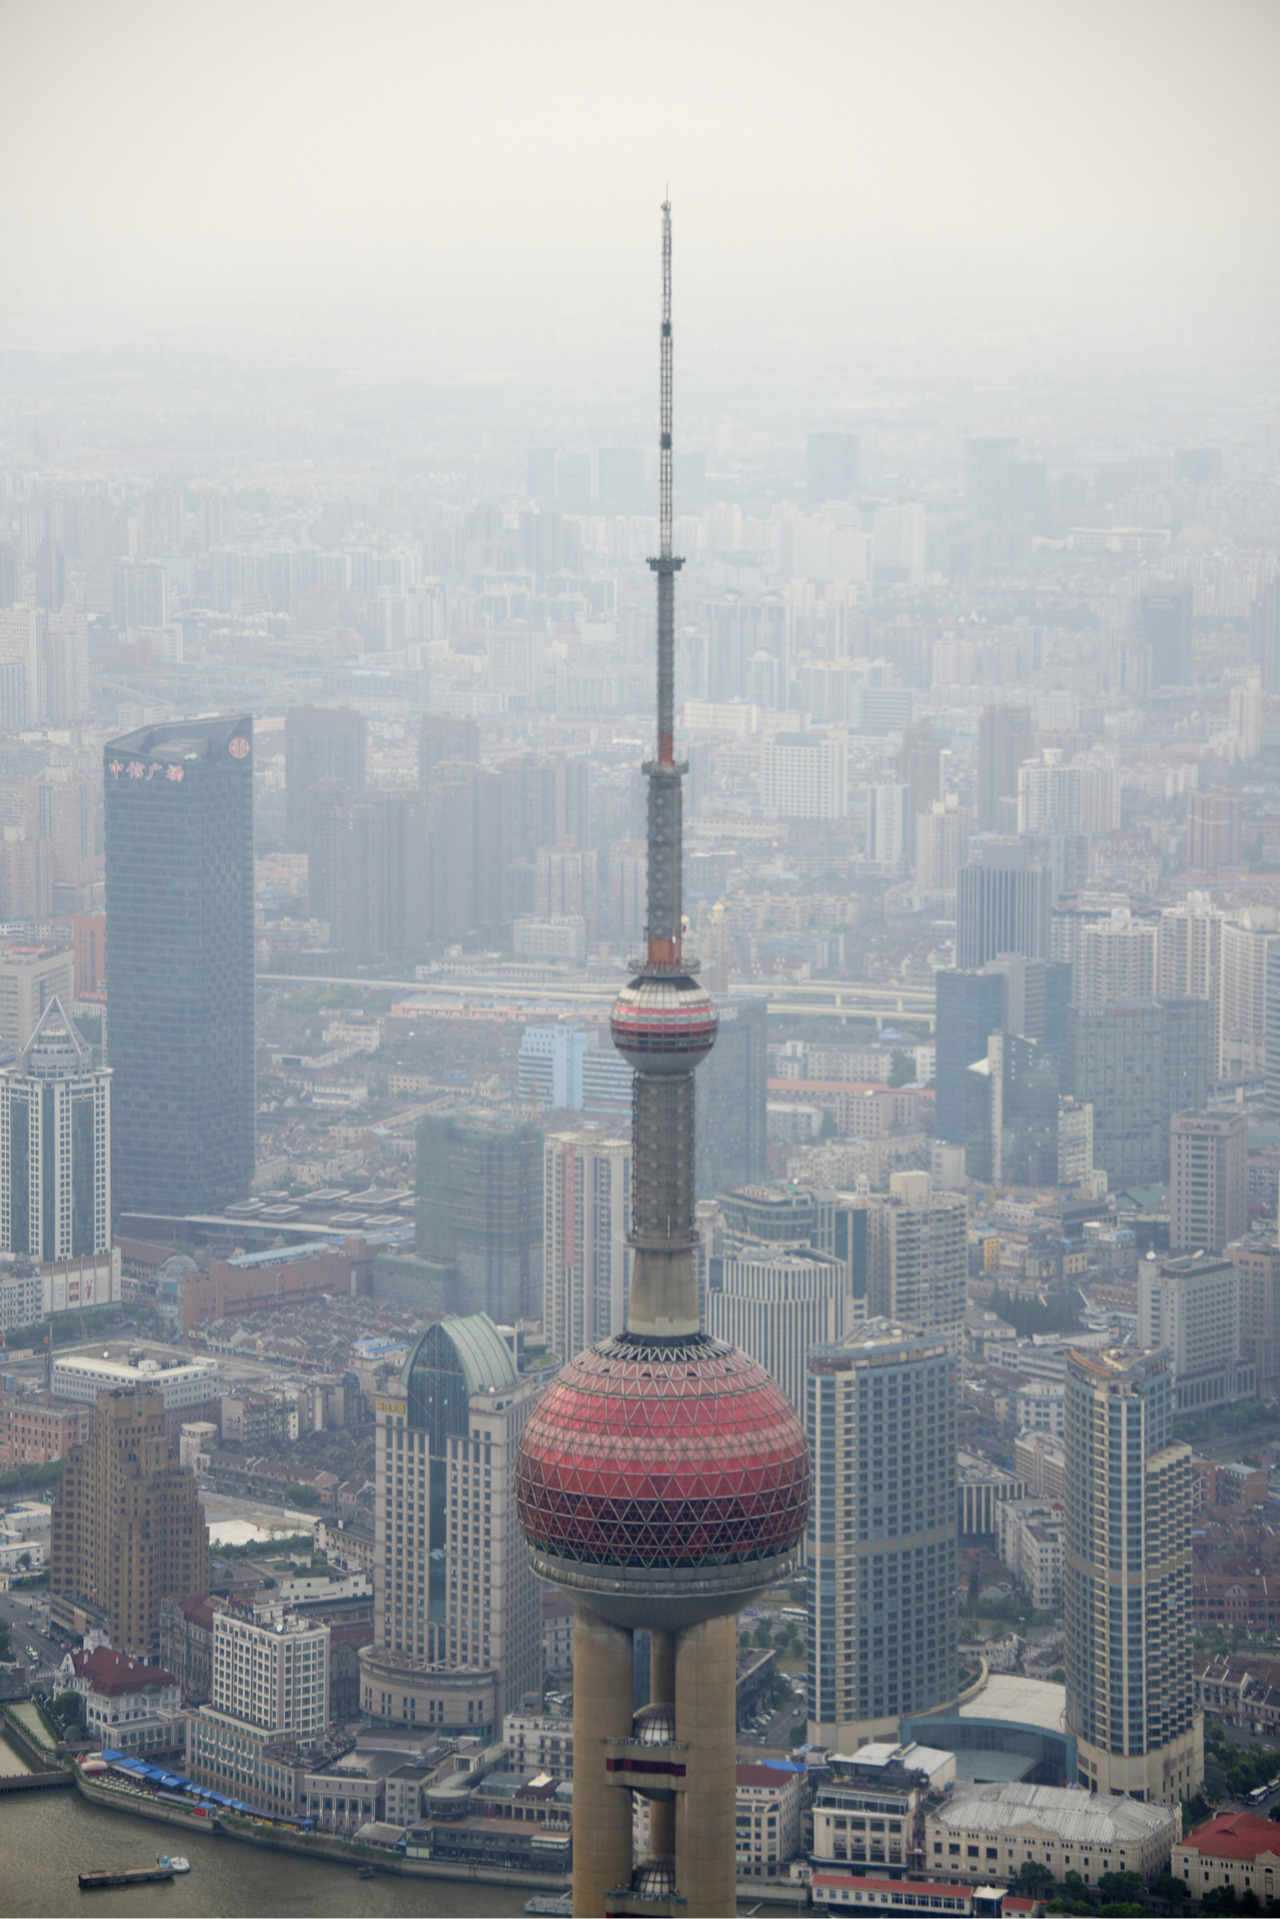 [RTW12] Shanghai, Sept. '12: Oriental Pearl Tower